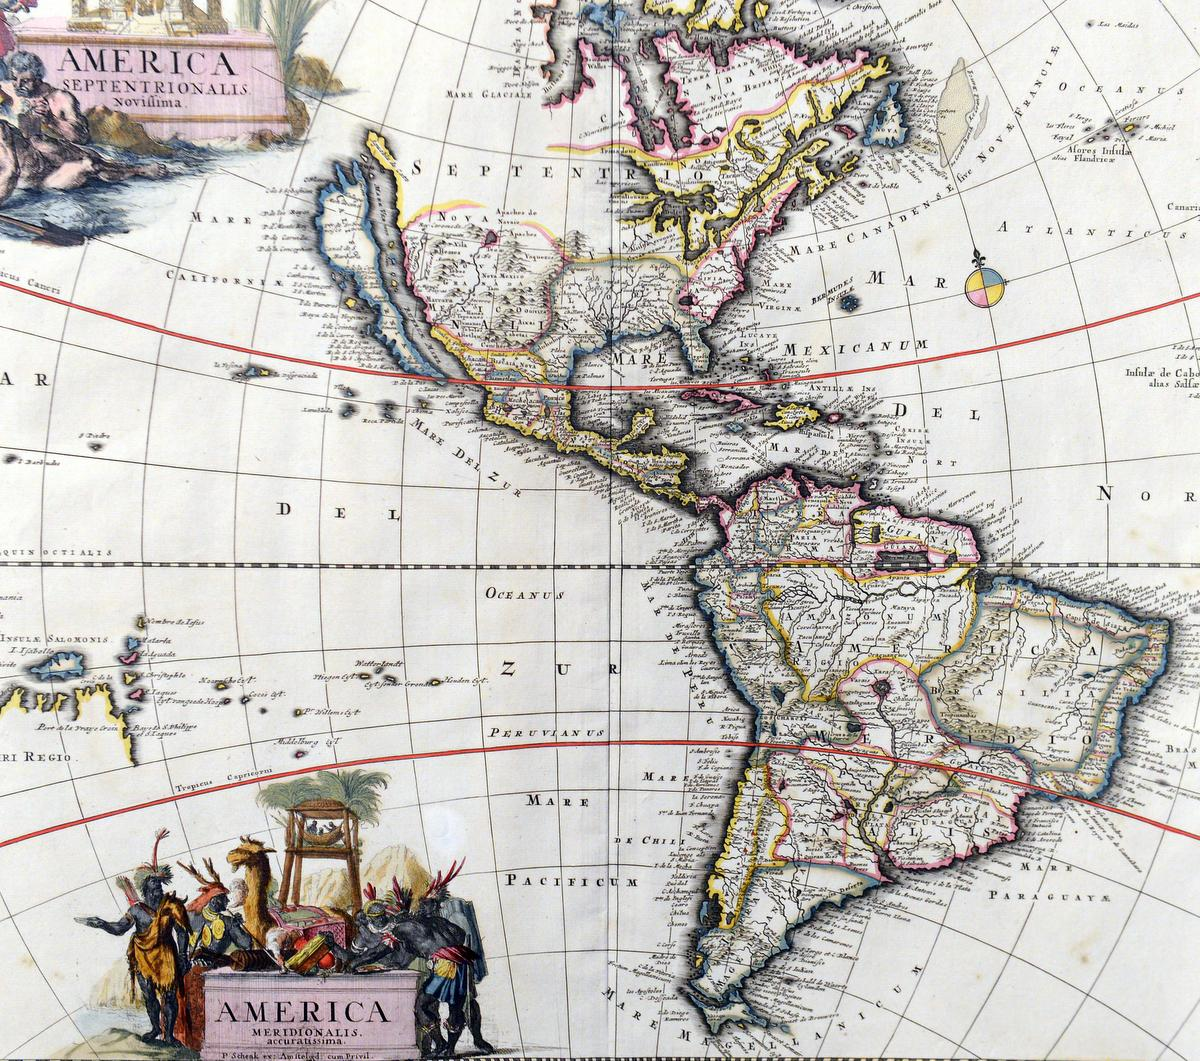 Somos primos the art of map making by angie marcos orange county register feb 6 fandeluxe Choice Image